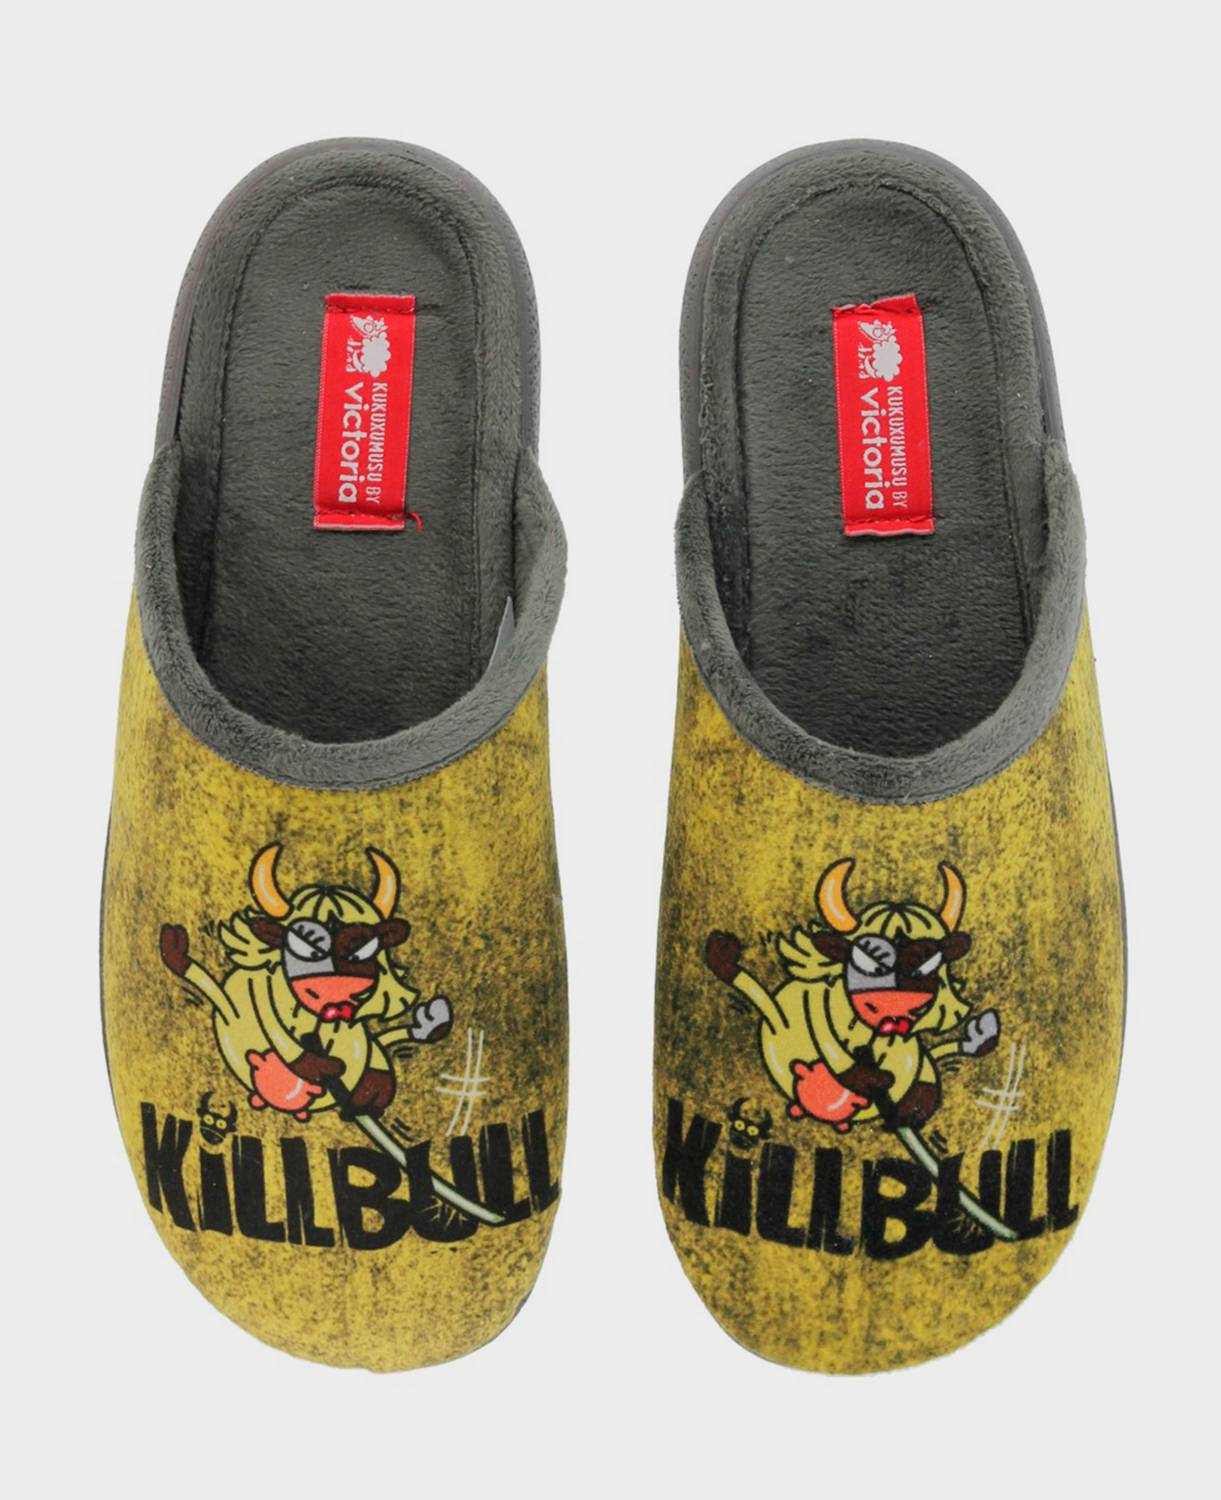 Zapatillas de casa  Killbull